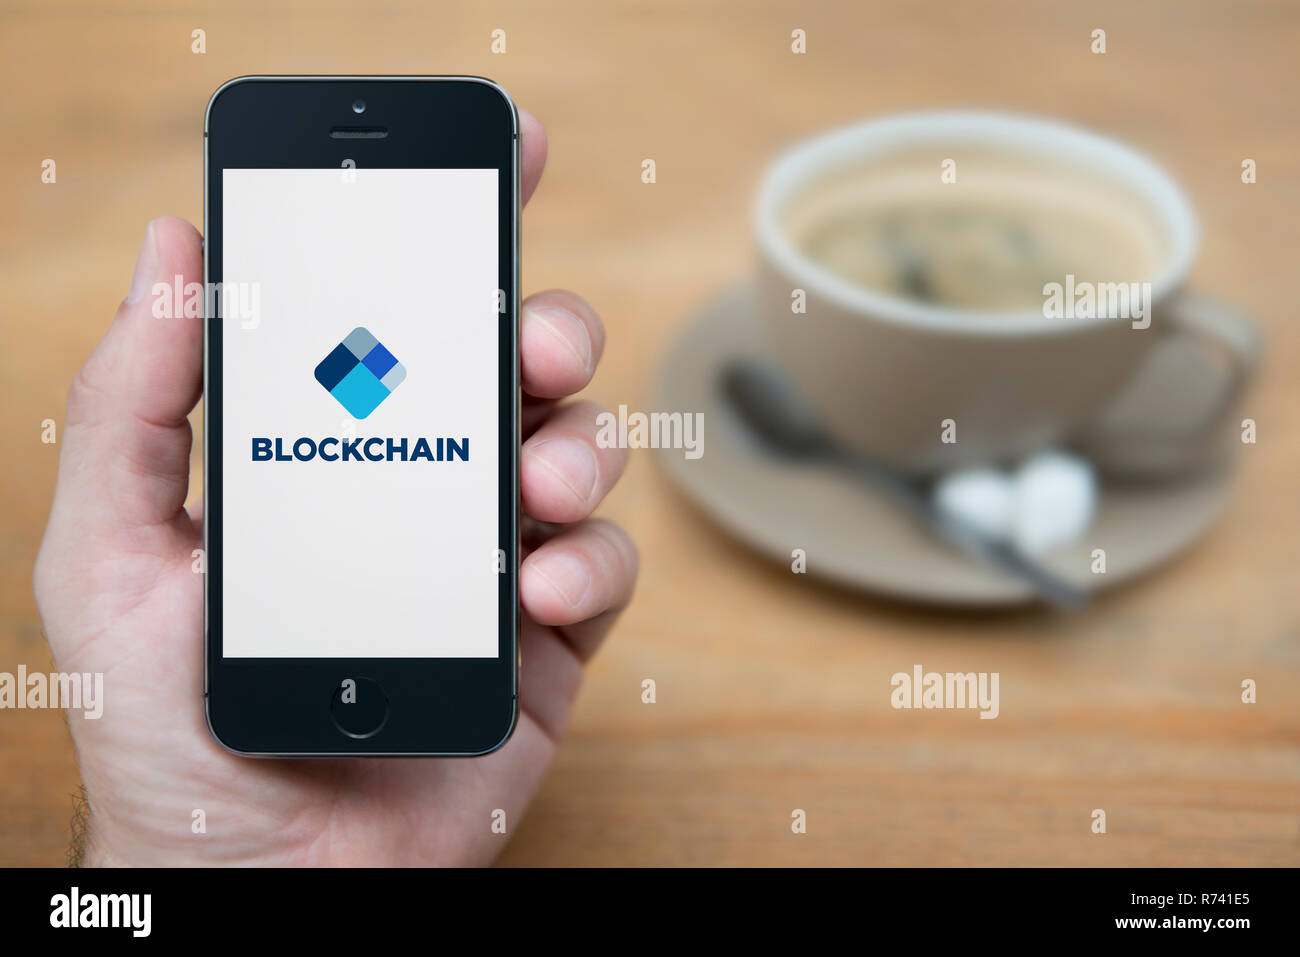 A man looks at his iPhone which displays the Blockchain logo (Editorial use only). - Stock Image